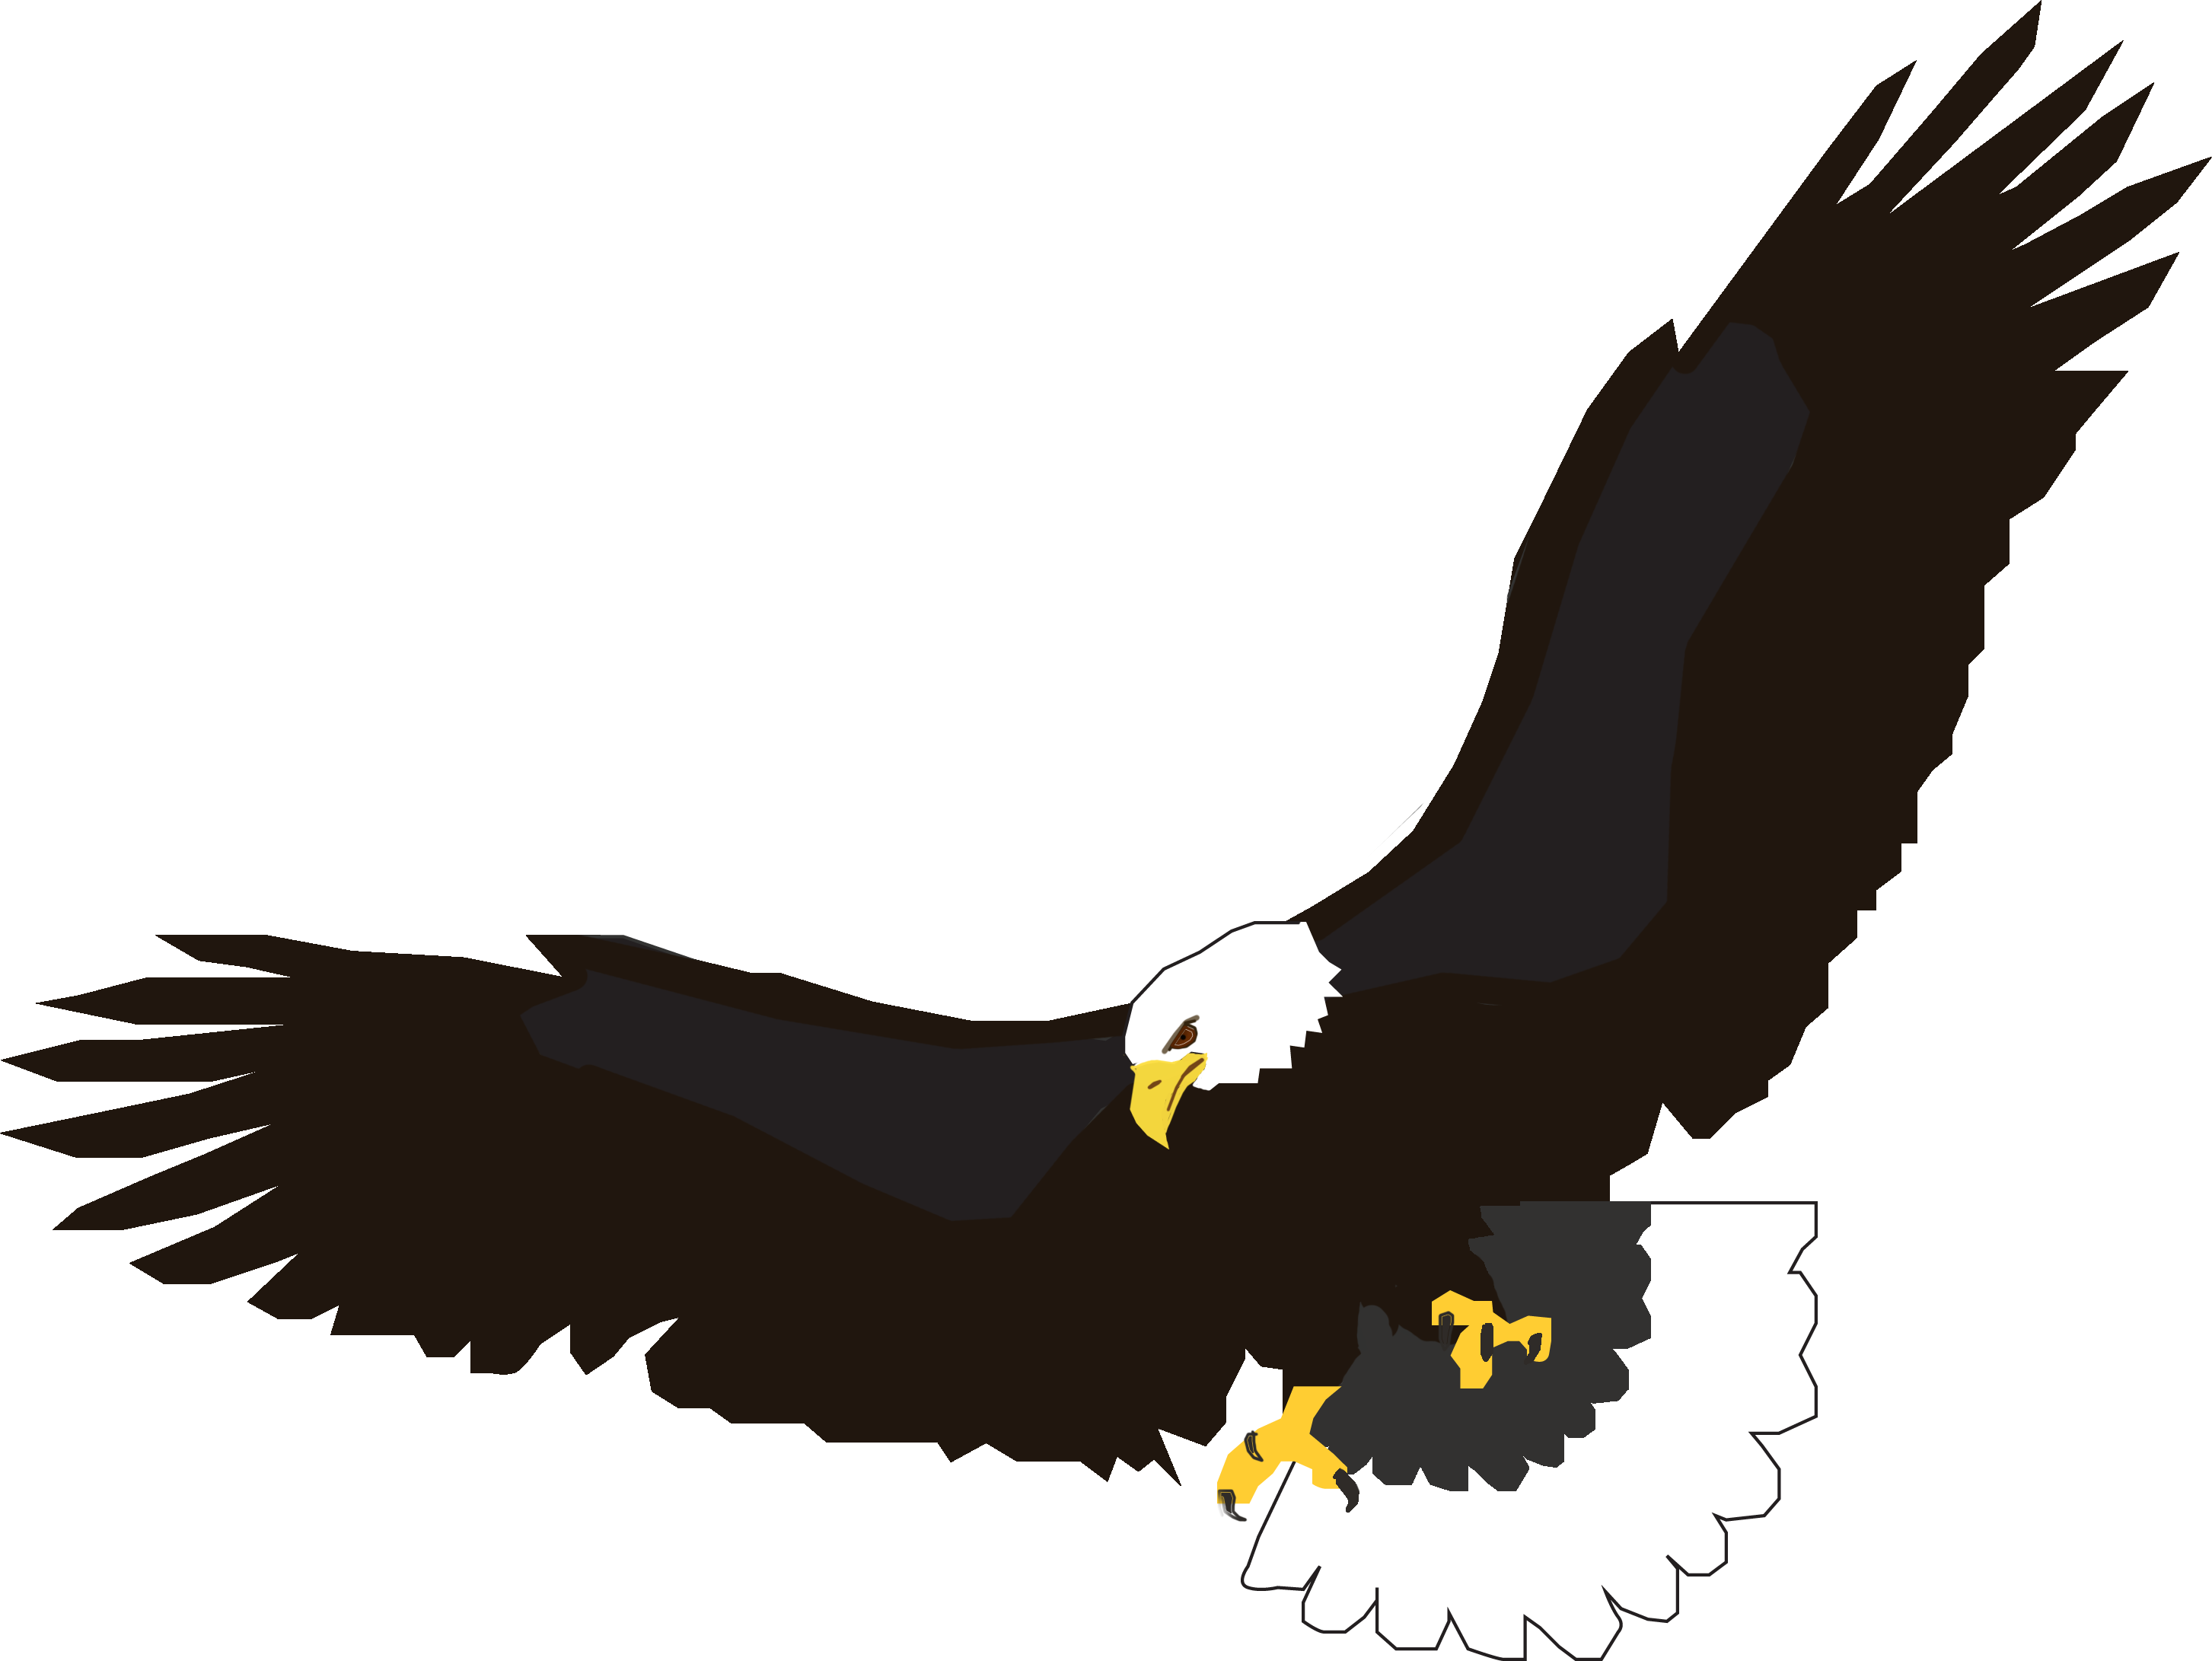 Native cliparts art pinterest. July clipart eagle